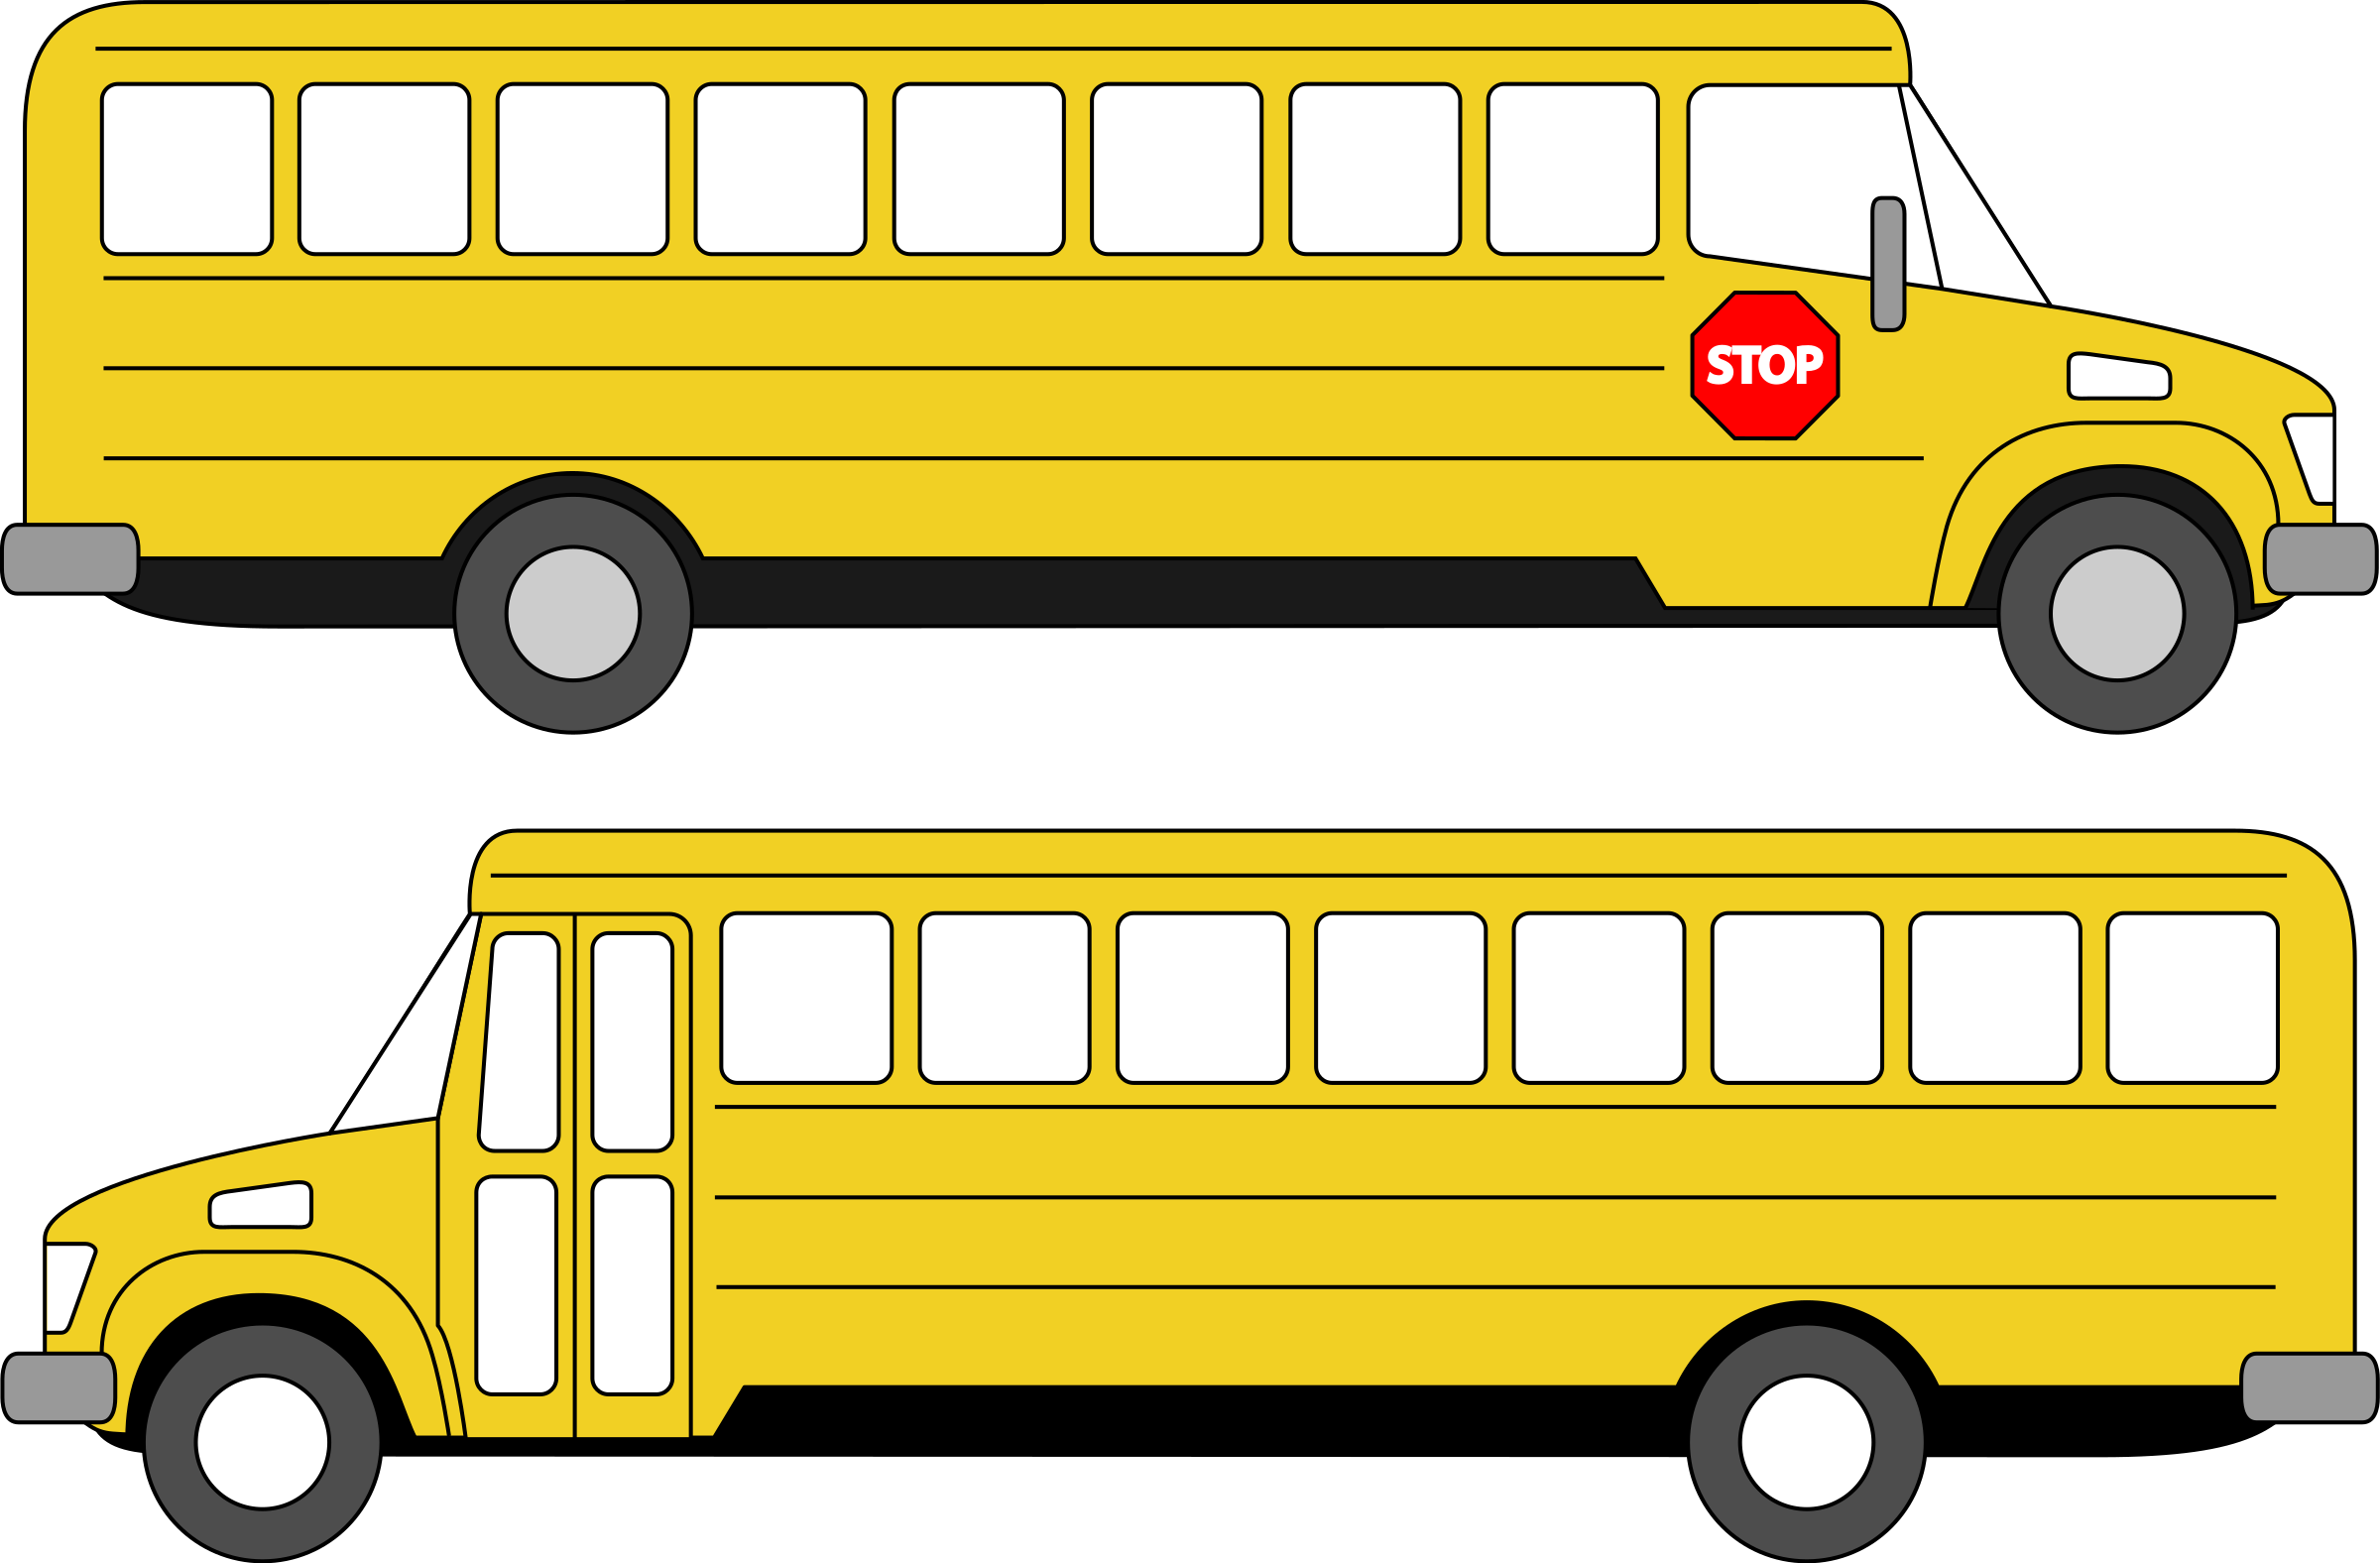 School bus safety clipart clip art black and white library Clipart - School bus clip art black and white library